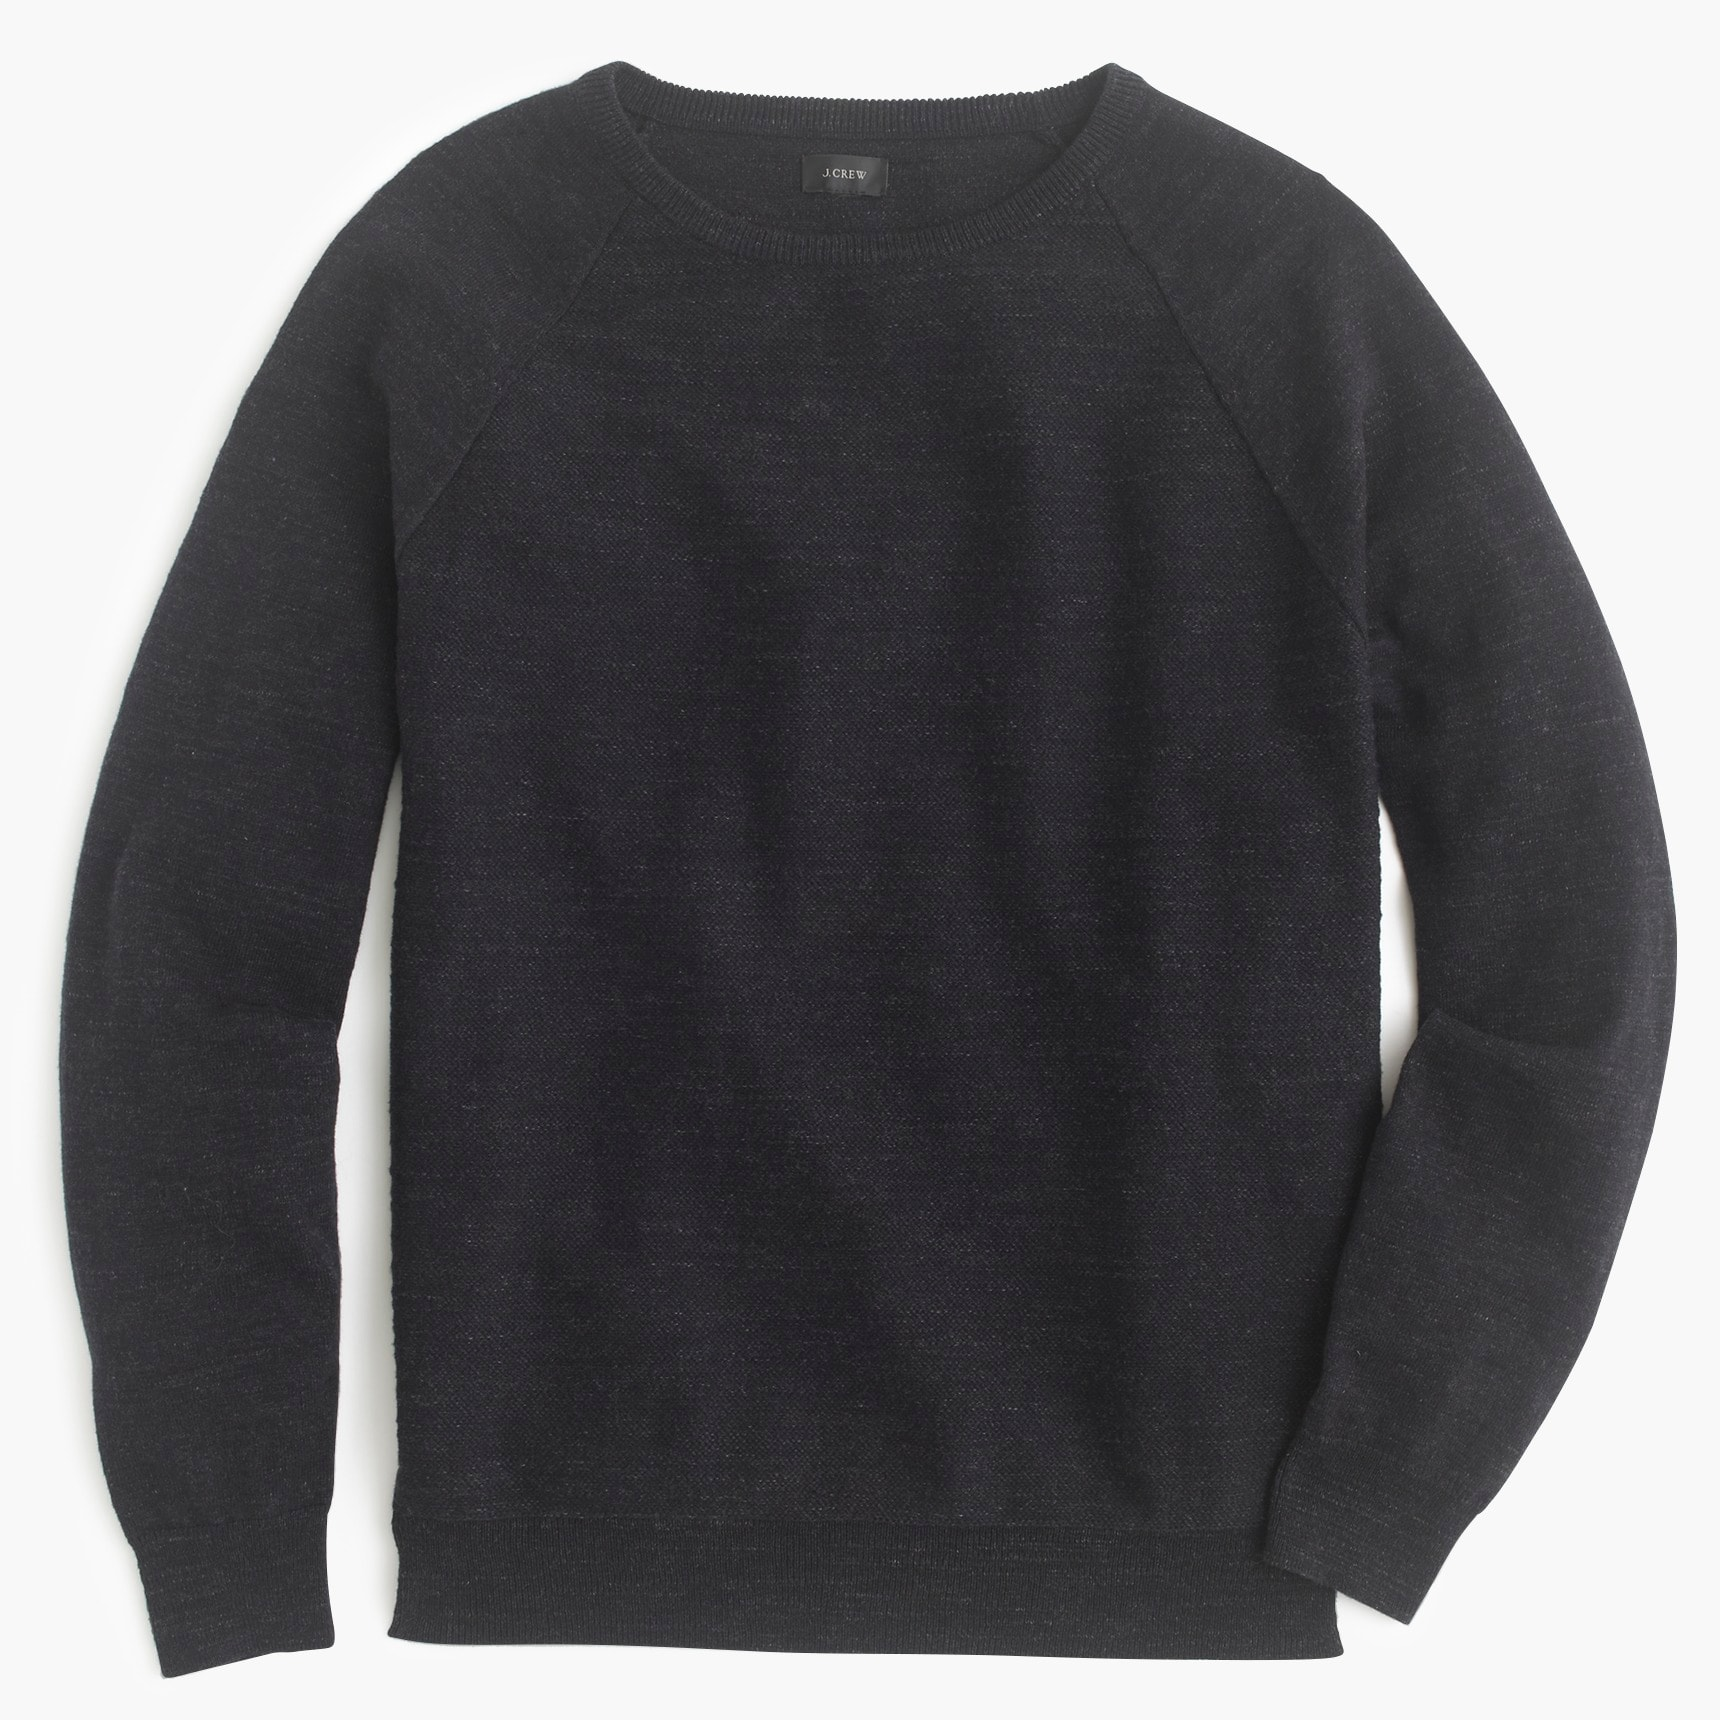 Image 1 for Tall rugged cotton sweater